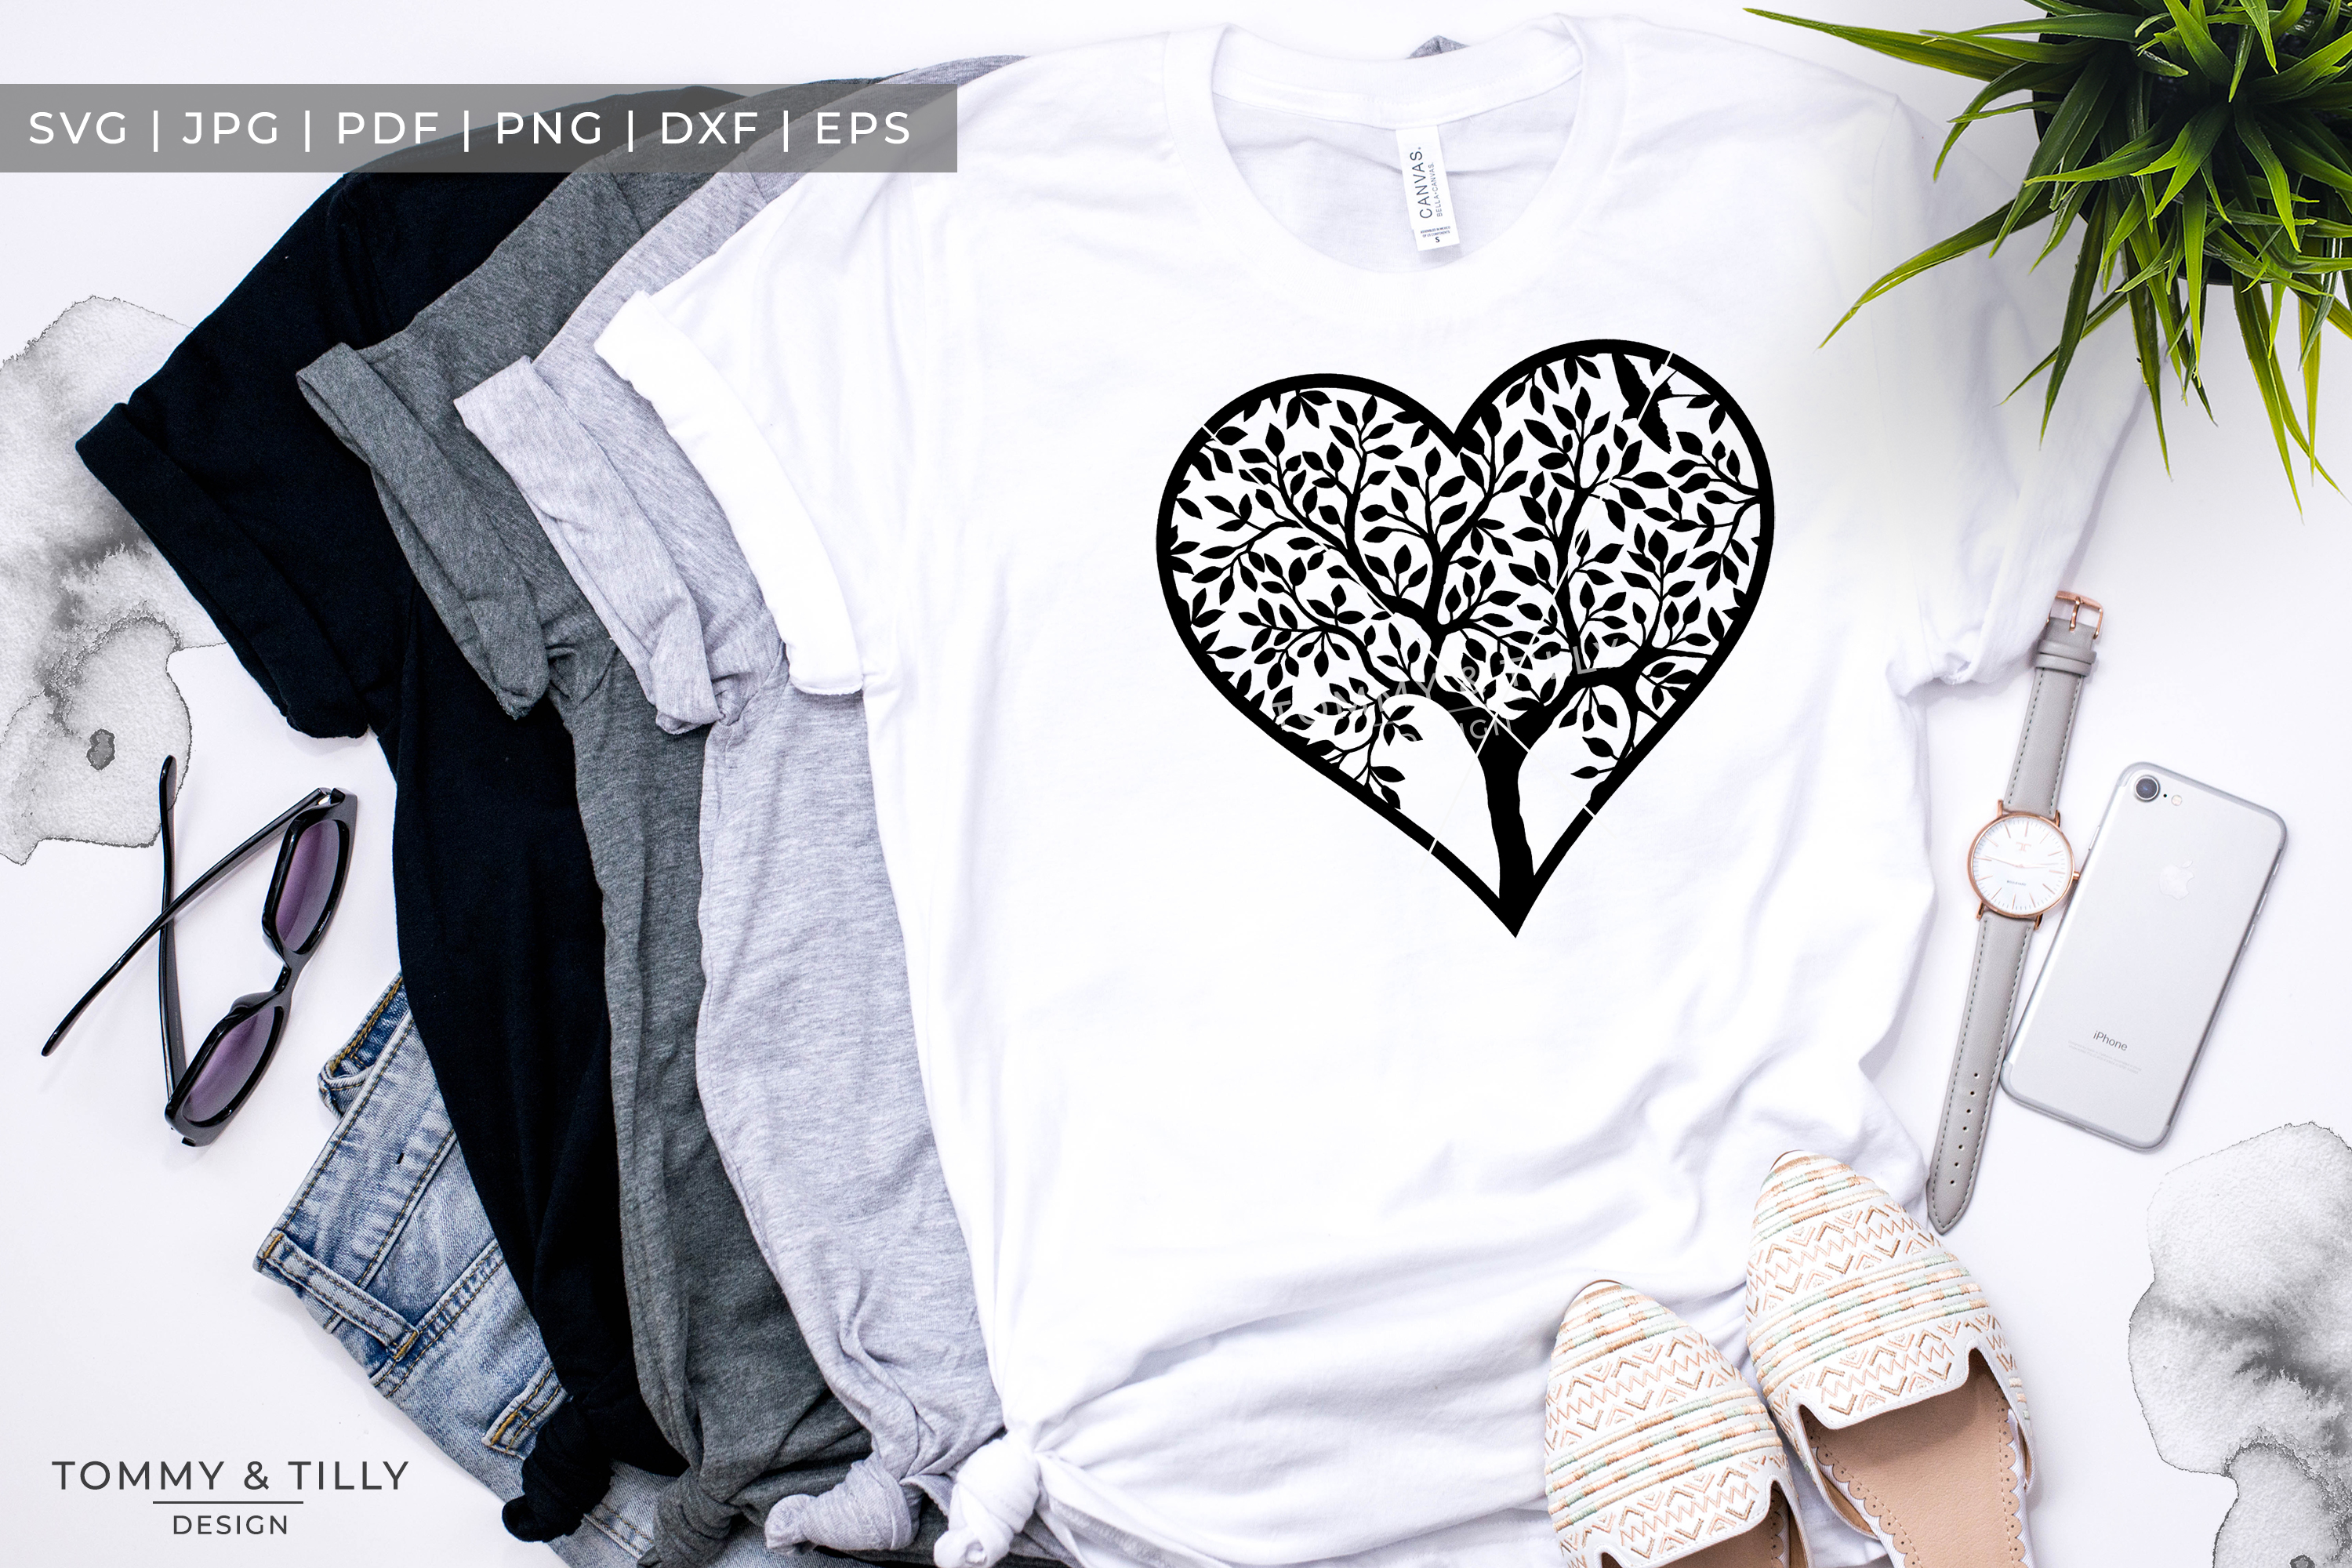 Heart Tree - Papercut Template SVG EPS DXF PNG PDF JPG example image 7